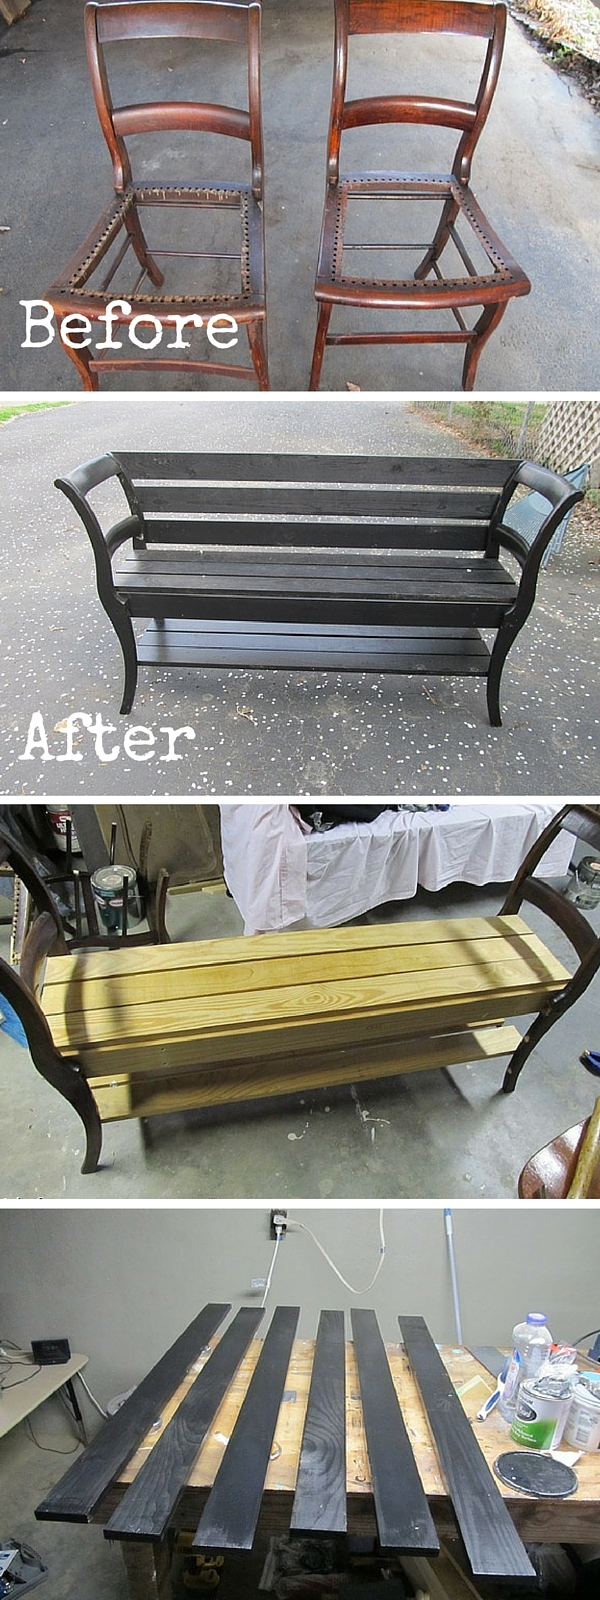 upcycled furniture upcycling reuse DIY The handy mano manomano chair bench